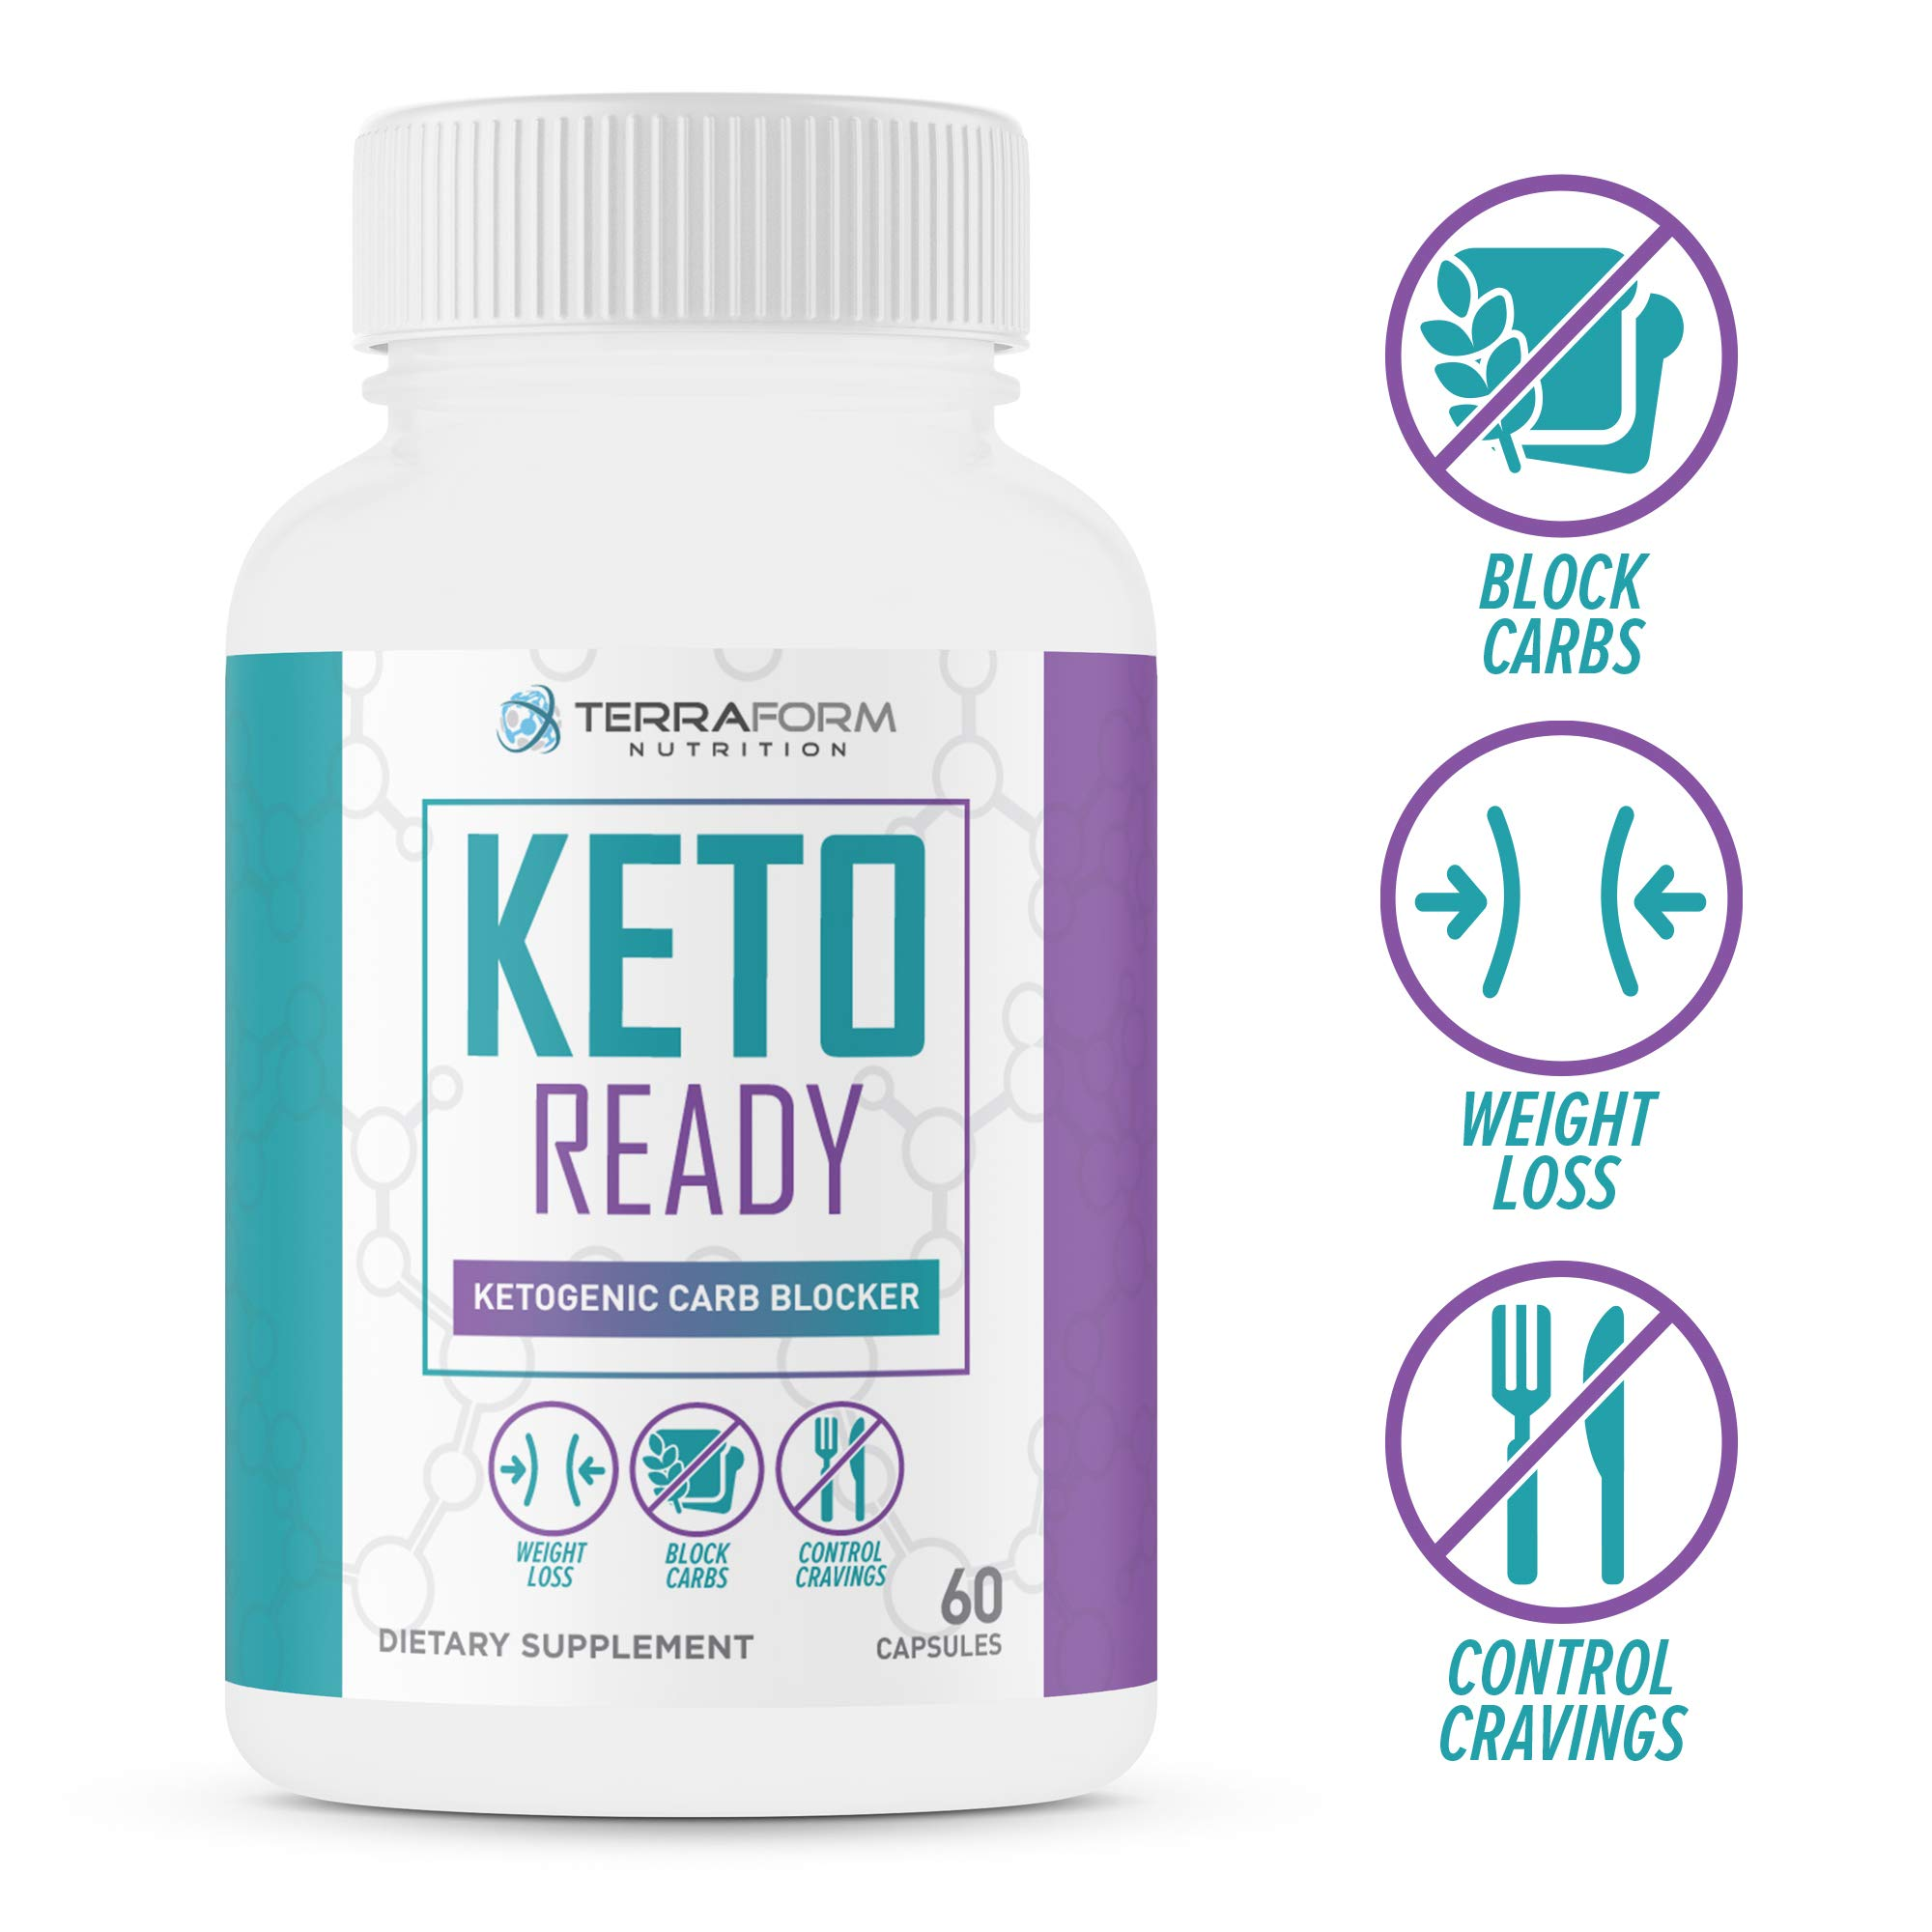 Keto Ready - Max Strength Keto Carb Blocker 1200mg - Burn Fat & Block Carb Absorption - Minimize Cheat Meals & Maintain Ketosis - White Kidney Bean Extract - for Men & Women - Made in USA - 60 Capsule by TerraForm Nutrition